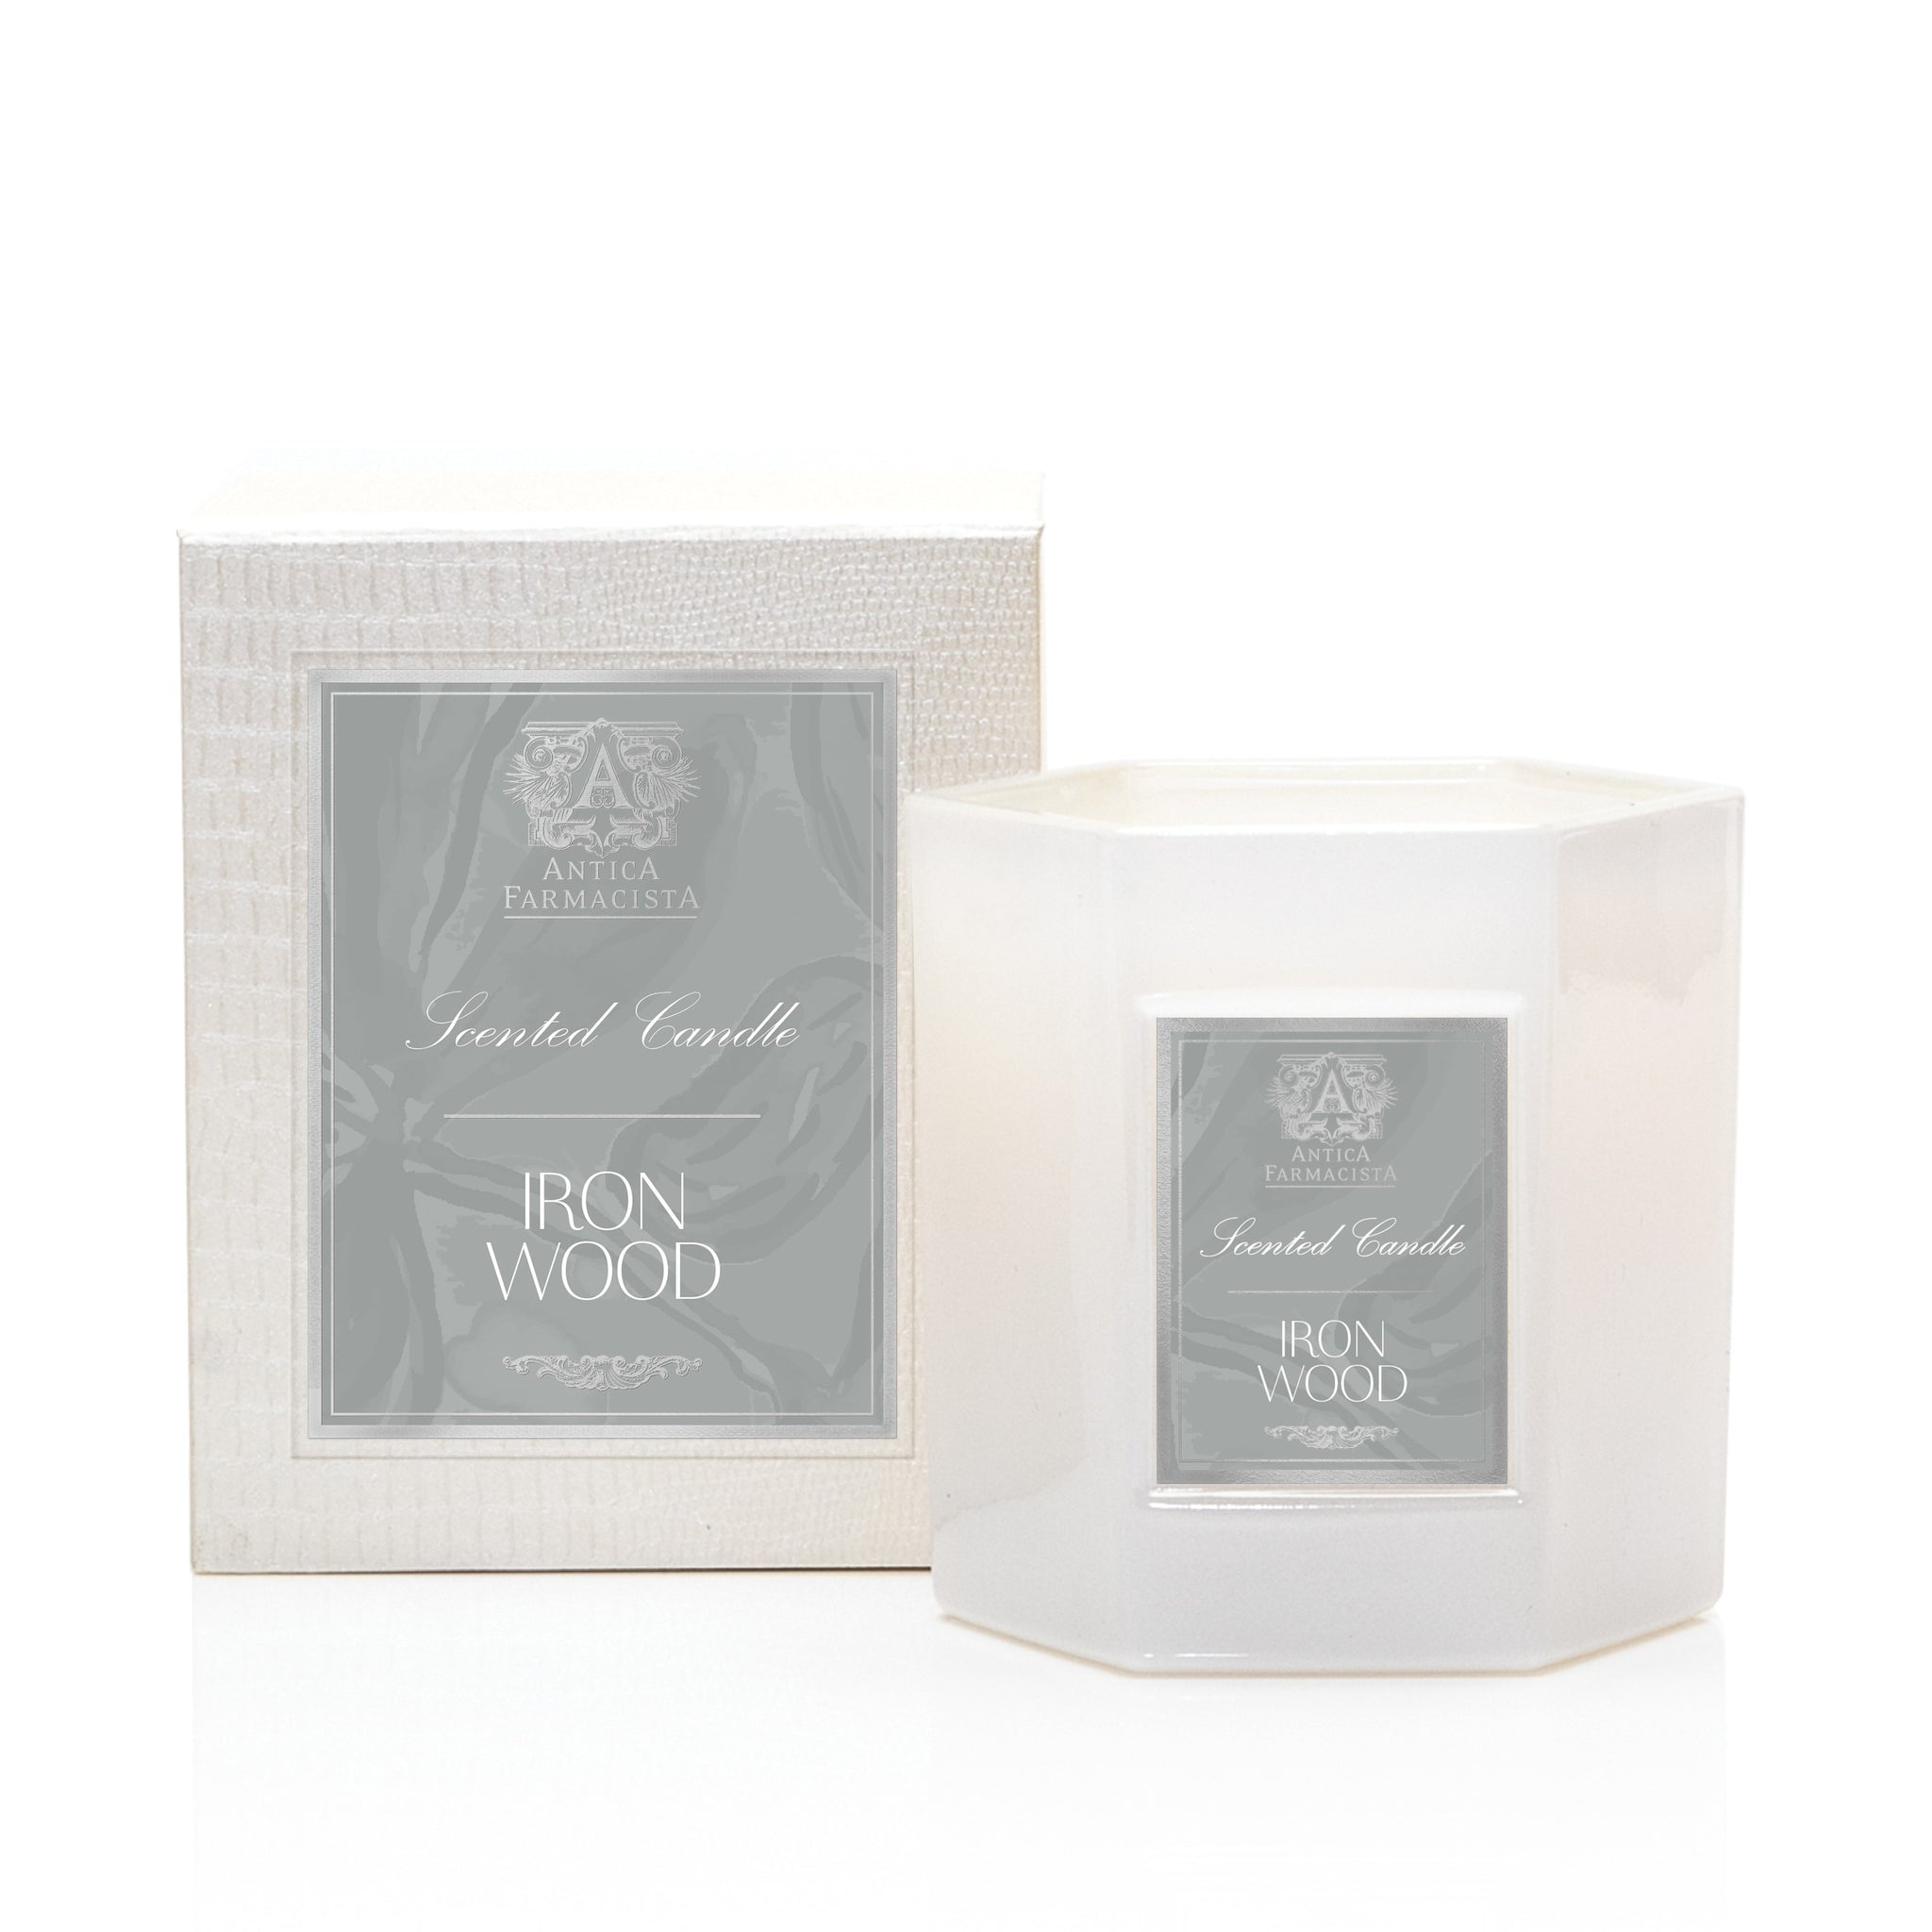 Ironwood Candle 9 oz. - Scents Lifestyle Home Fragrances